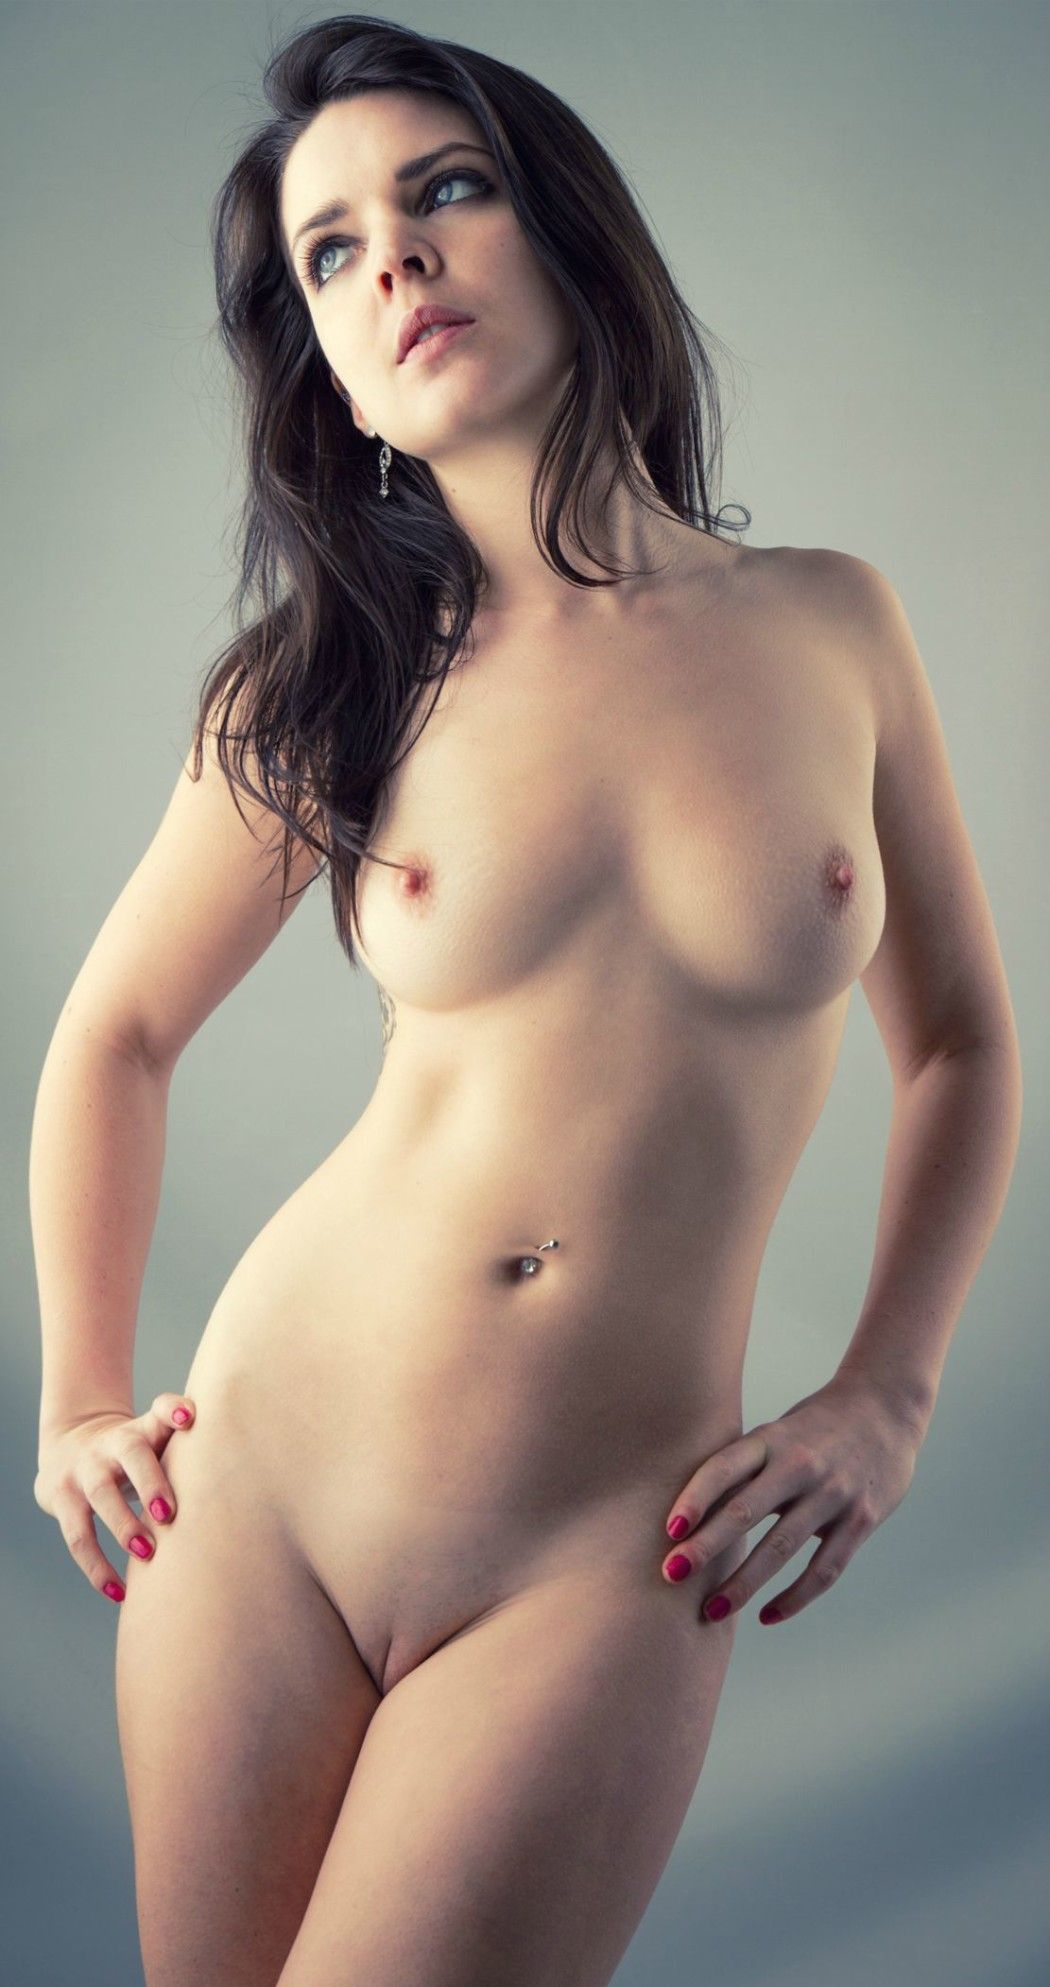 pindanny on beautiful boobs naked in 2018 | pinterest | boobs